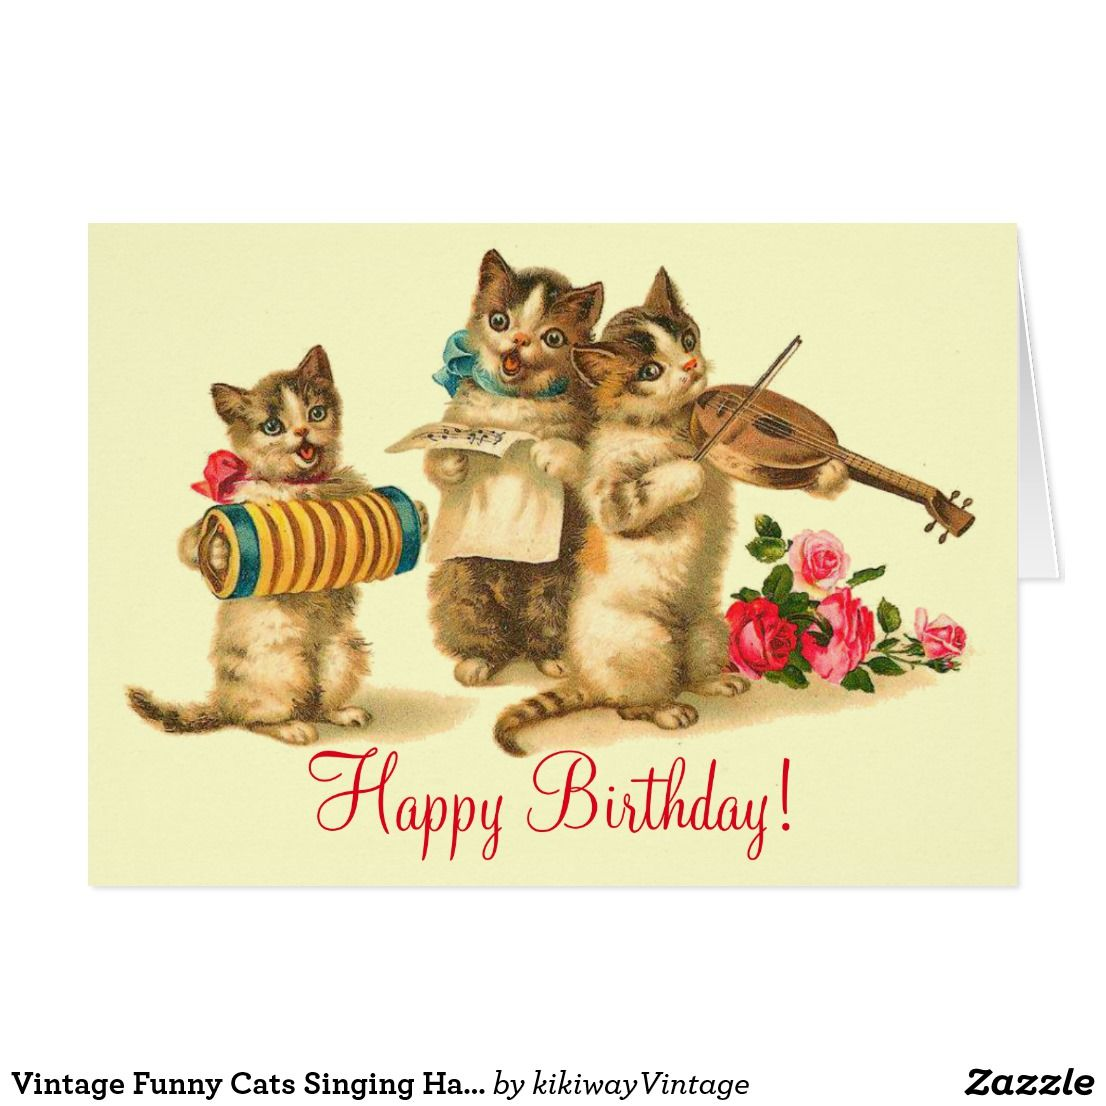 Vintage Funny Cats Singing Happy Birthday